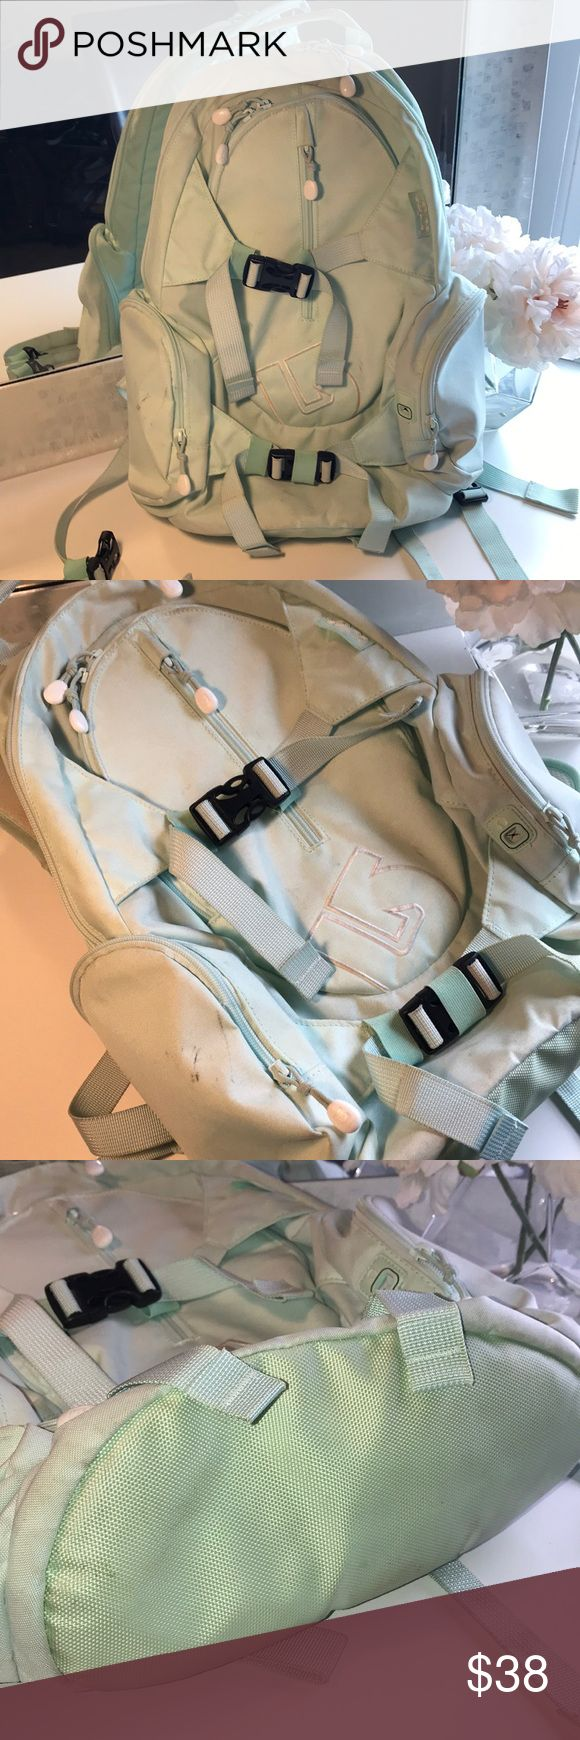 Burton women's teal backpack A few scuffs otherwise in very good condition Burton Bags Backpacks